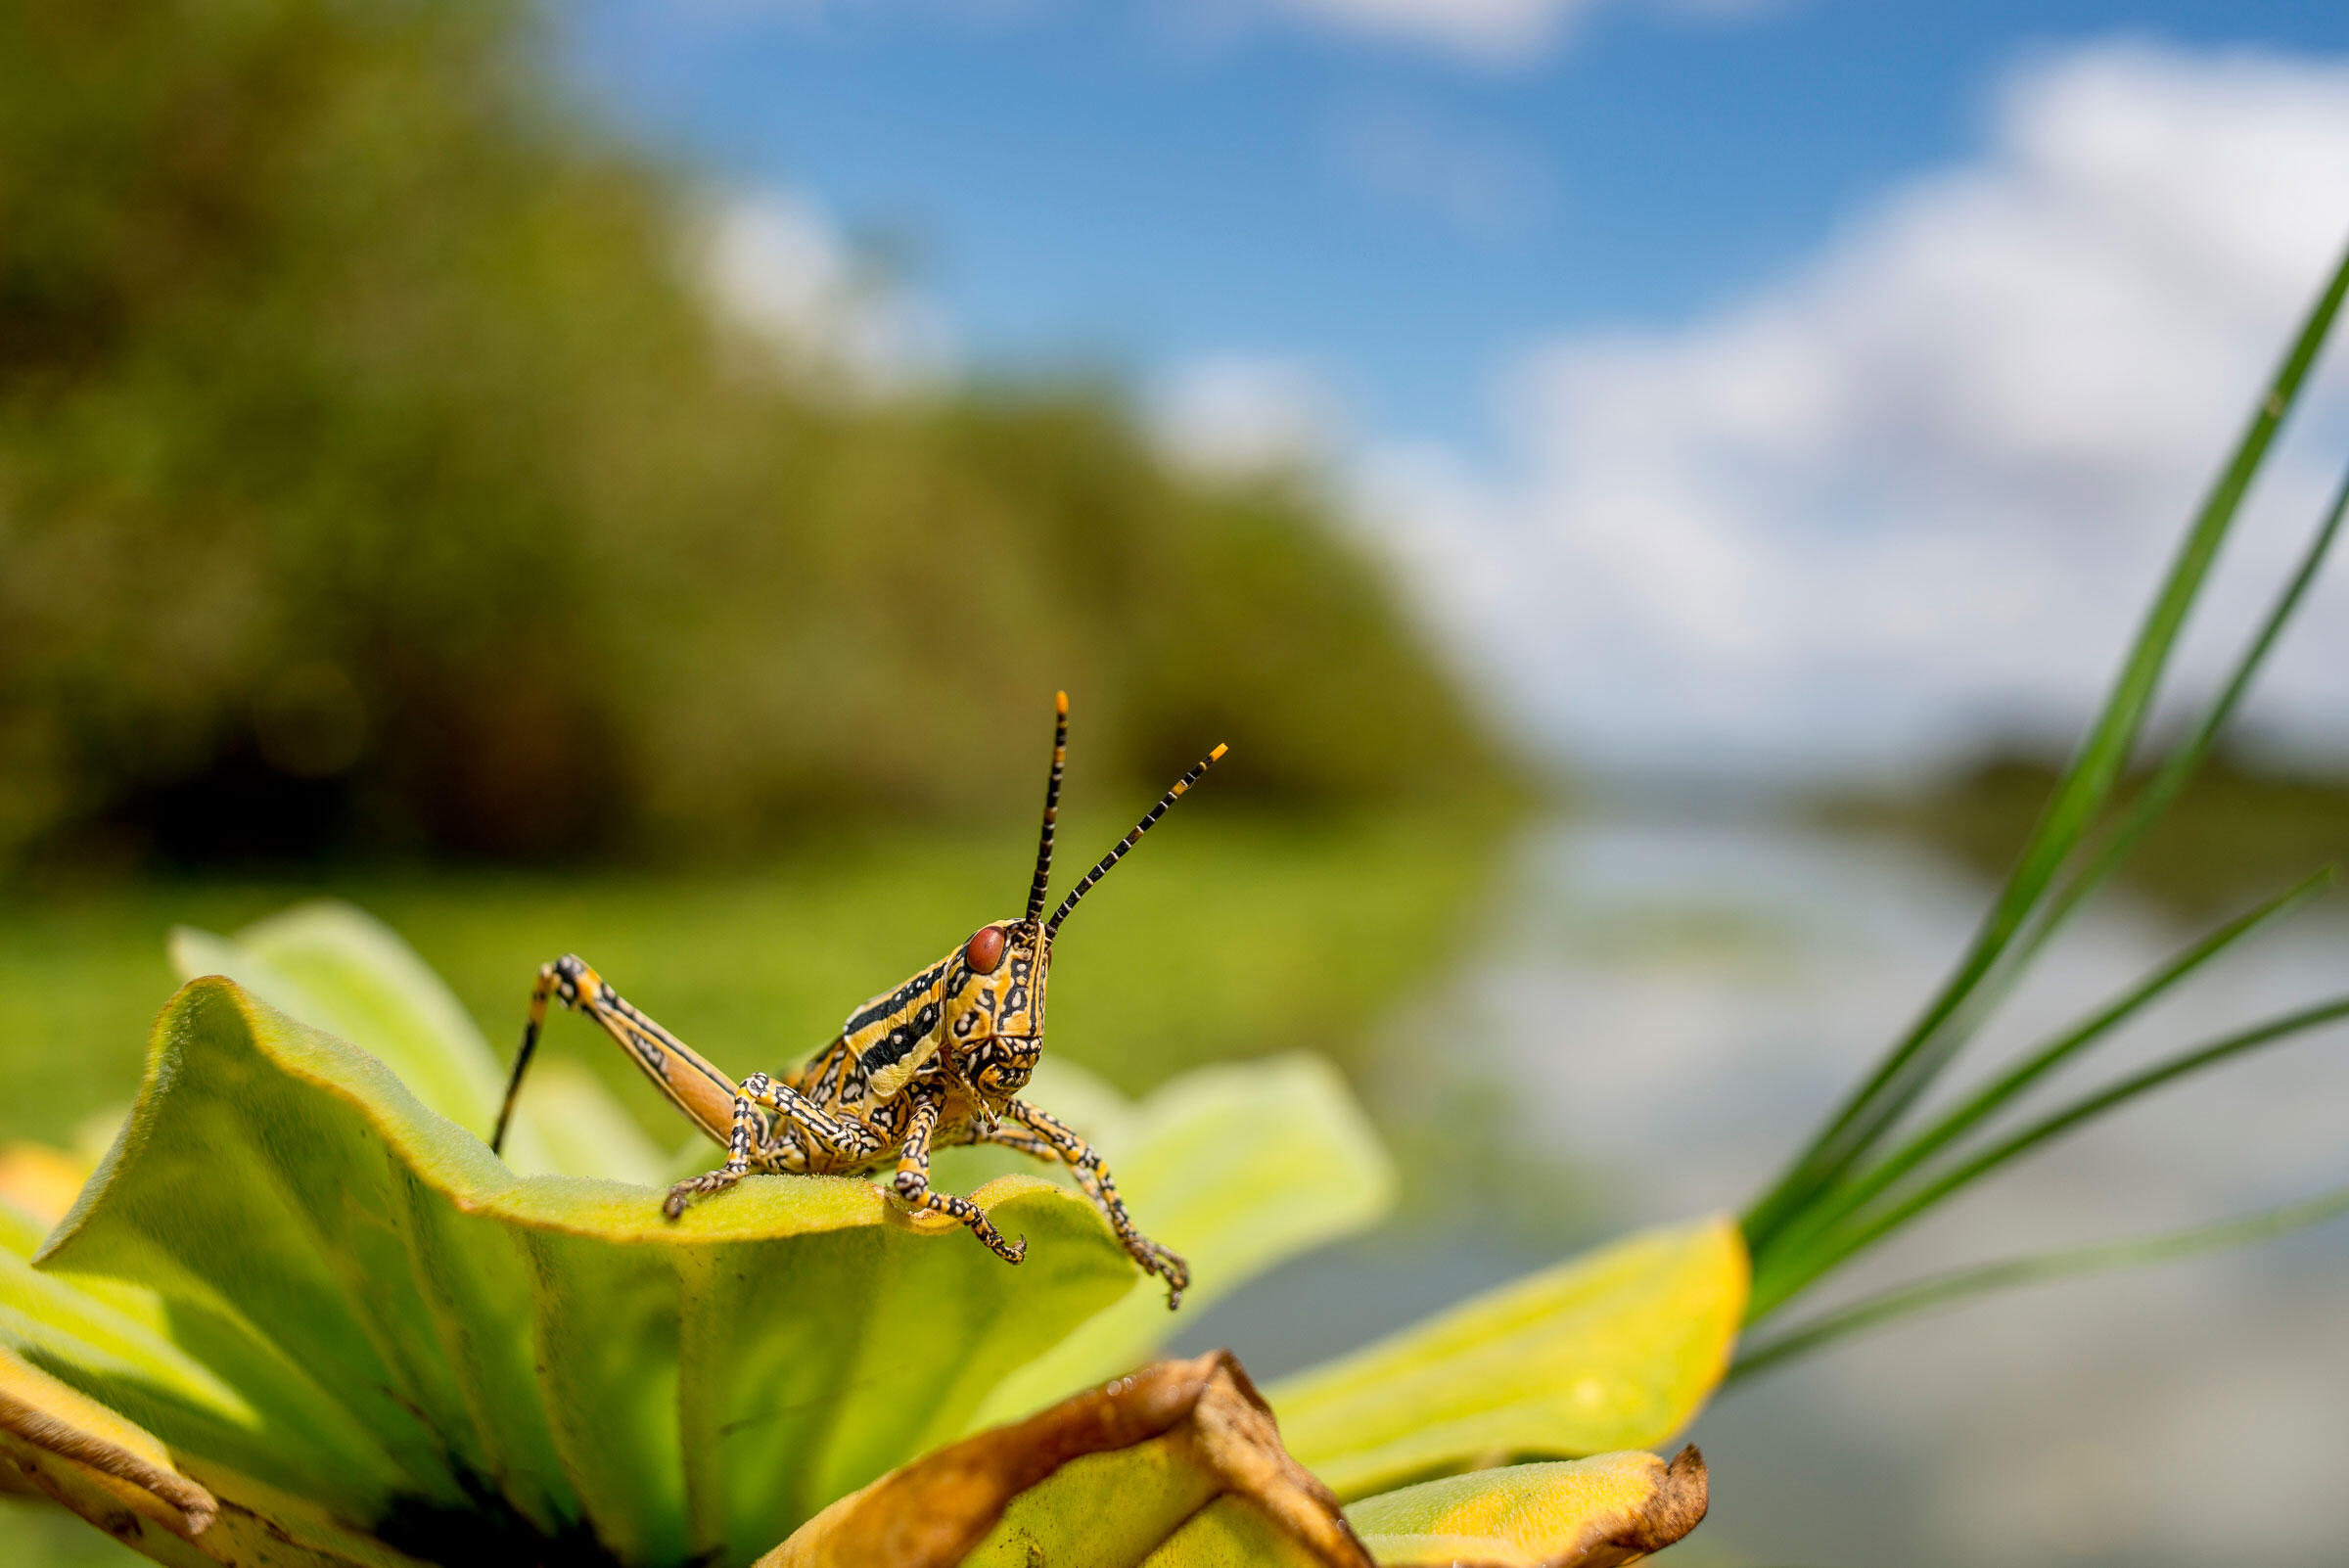 The aptly named elegant grasshopper appears by the thousands along the edges of the rivers and lakes in the northern Selous for a short season and then quickly disappears. Robert J. Ross